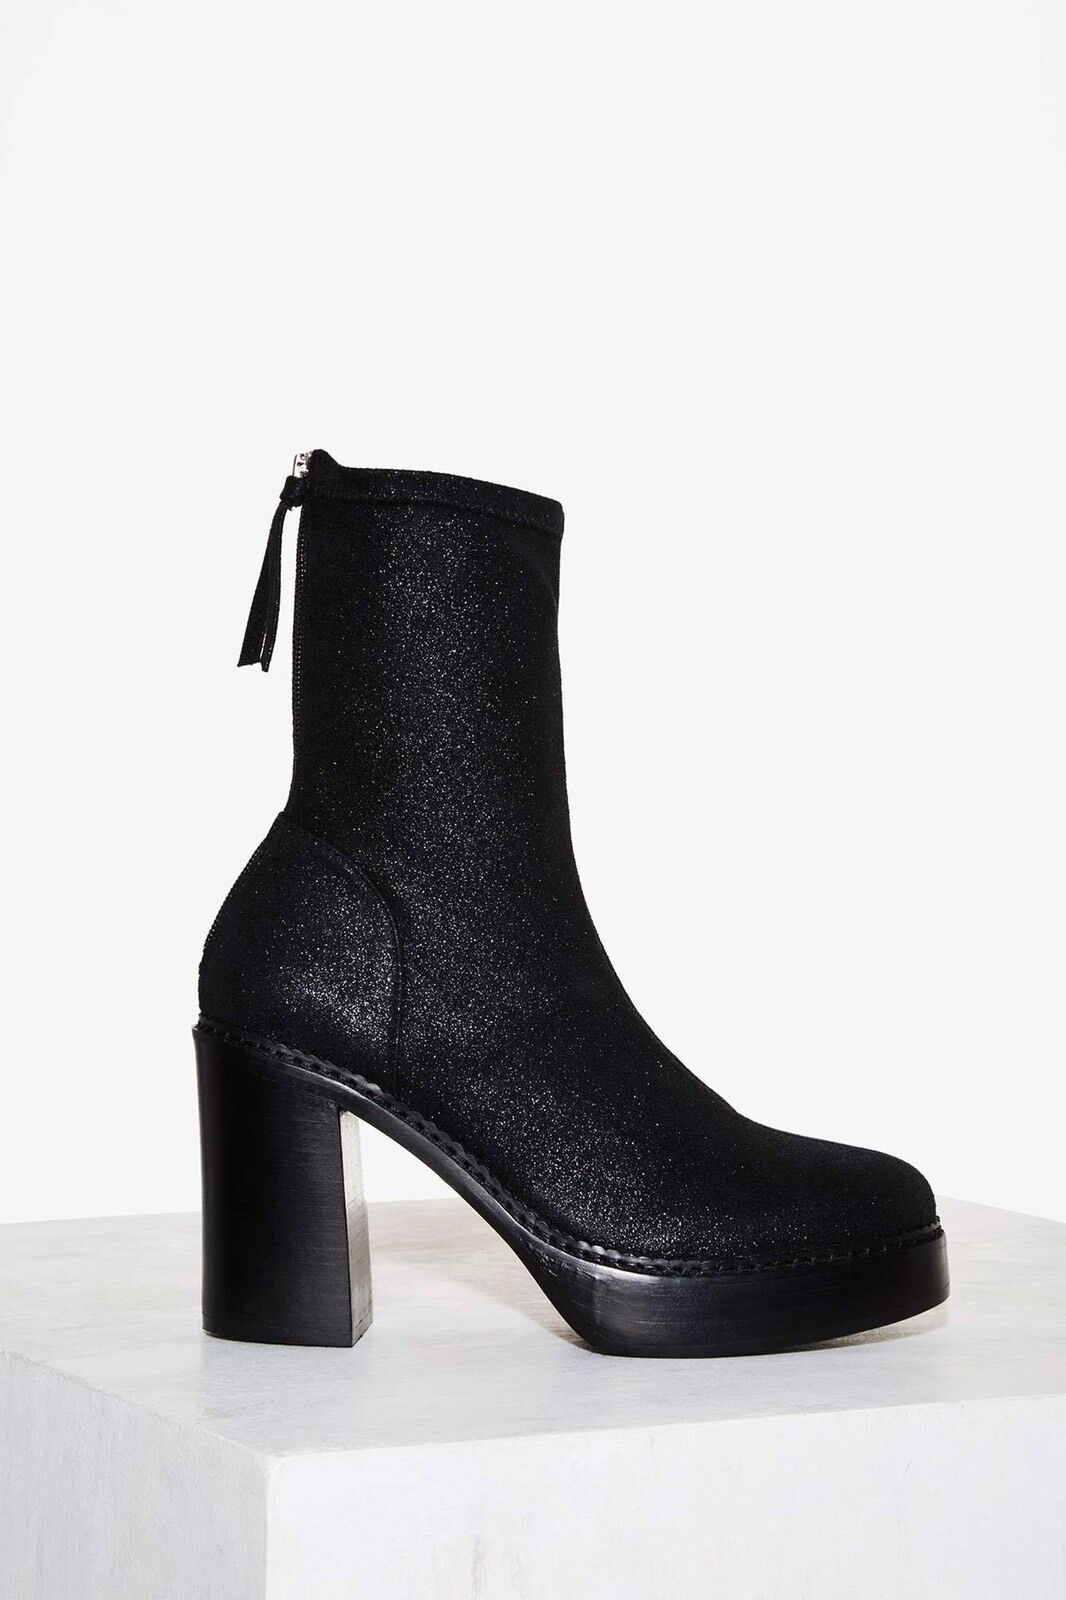 NEW Nasty Gal Radioactive Metallic Boot-Black, size 8.5 M Shimmery Zip Up